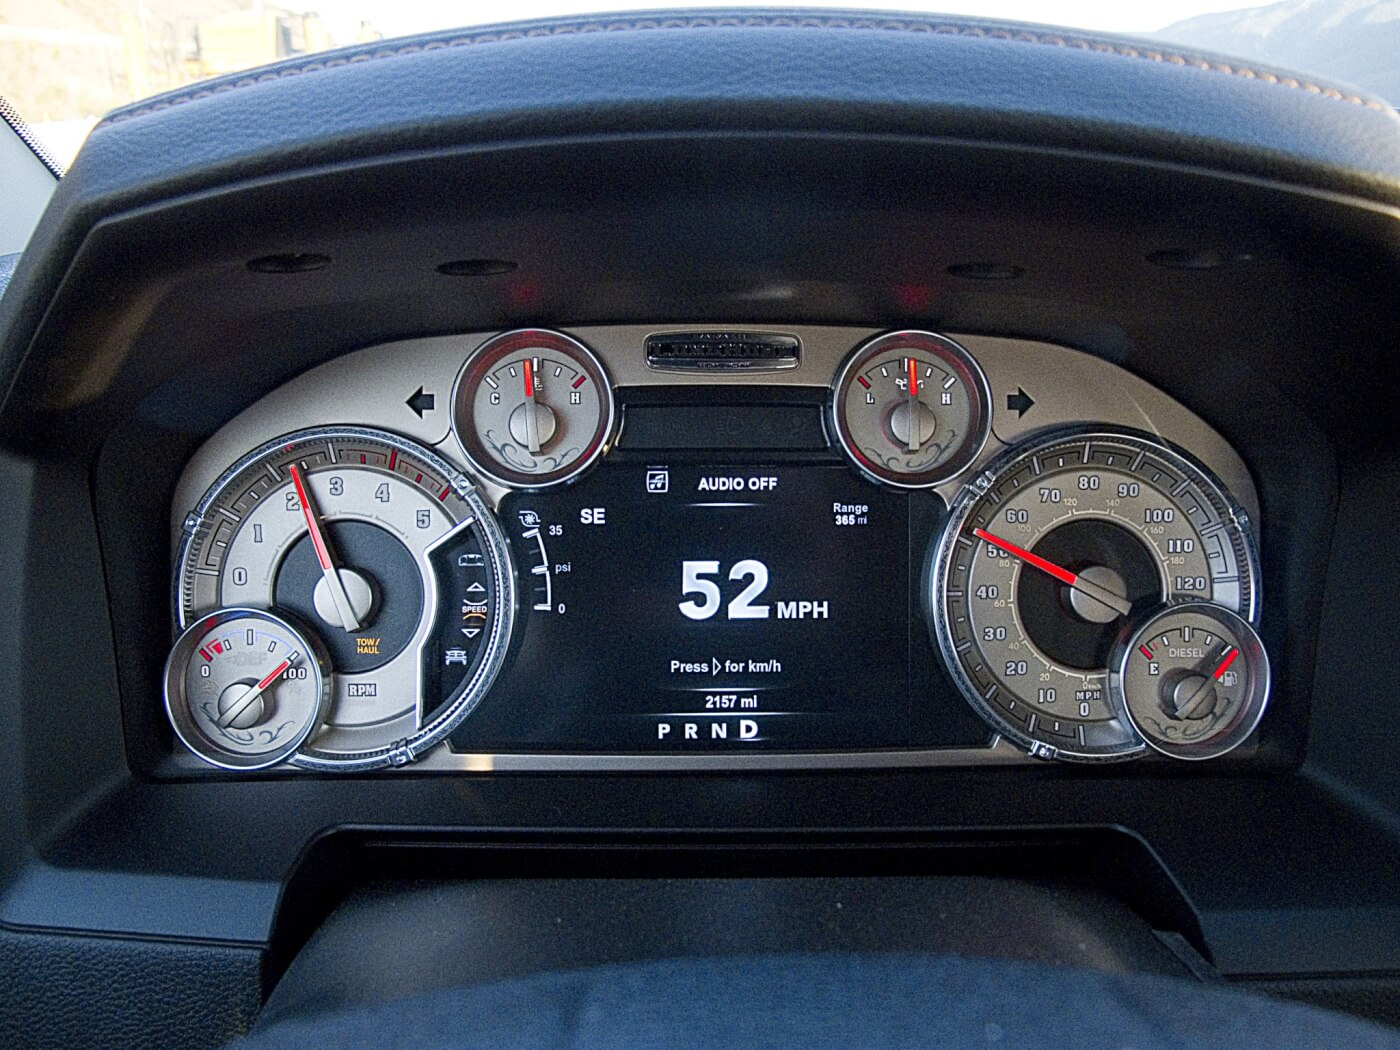 9. The Dash cluster on Ram trucks is well laid out and features both analog and digital information. The DEF fluid level, fuel level, tach, engine temp, oil pressure, and speedometer are all analog. In addition to the analog speedometer, a digital display also can be set to show the current speed in large numbers at the same time. A turbo boost gauge is also available on the digital display as an analog readout.